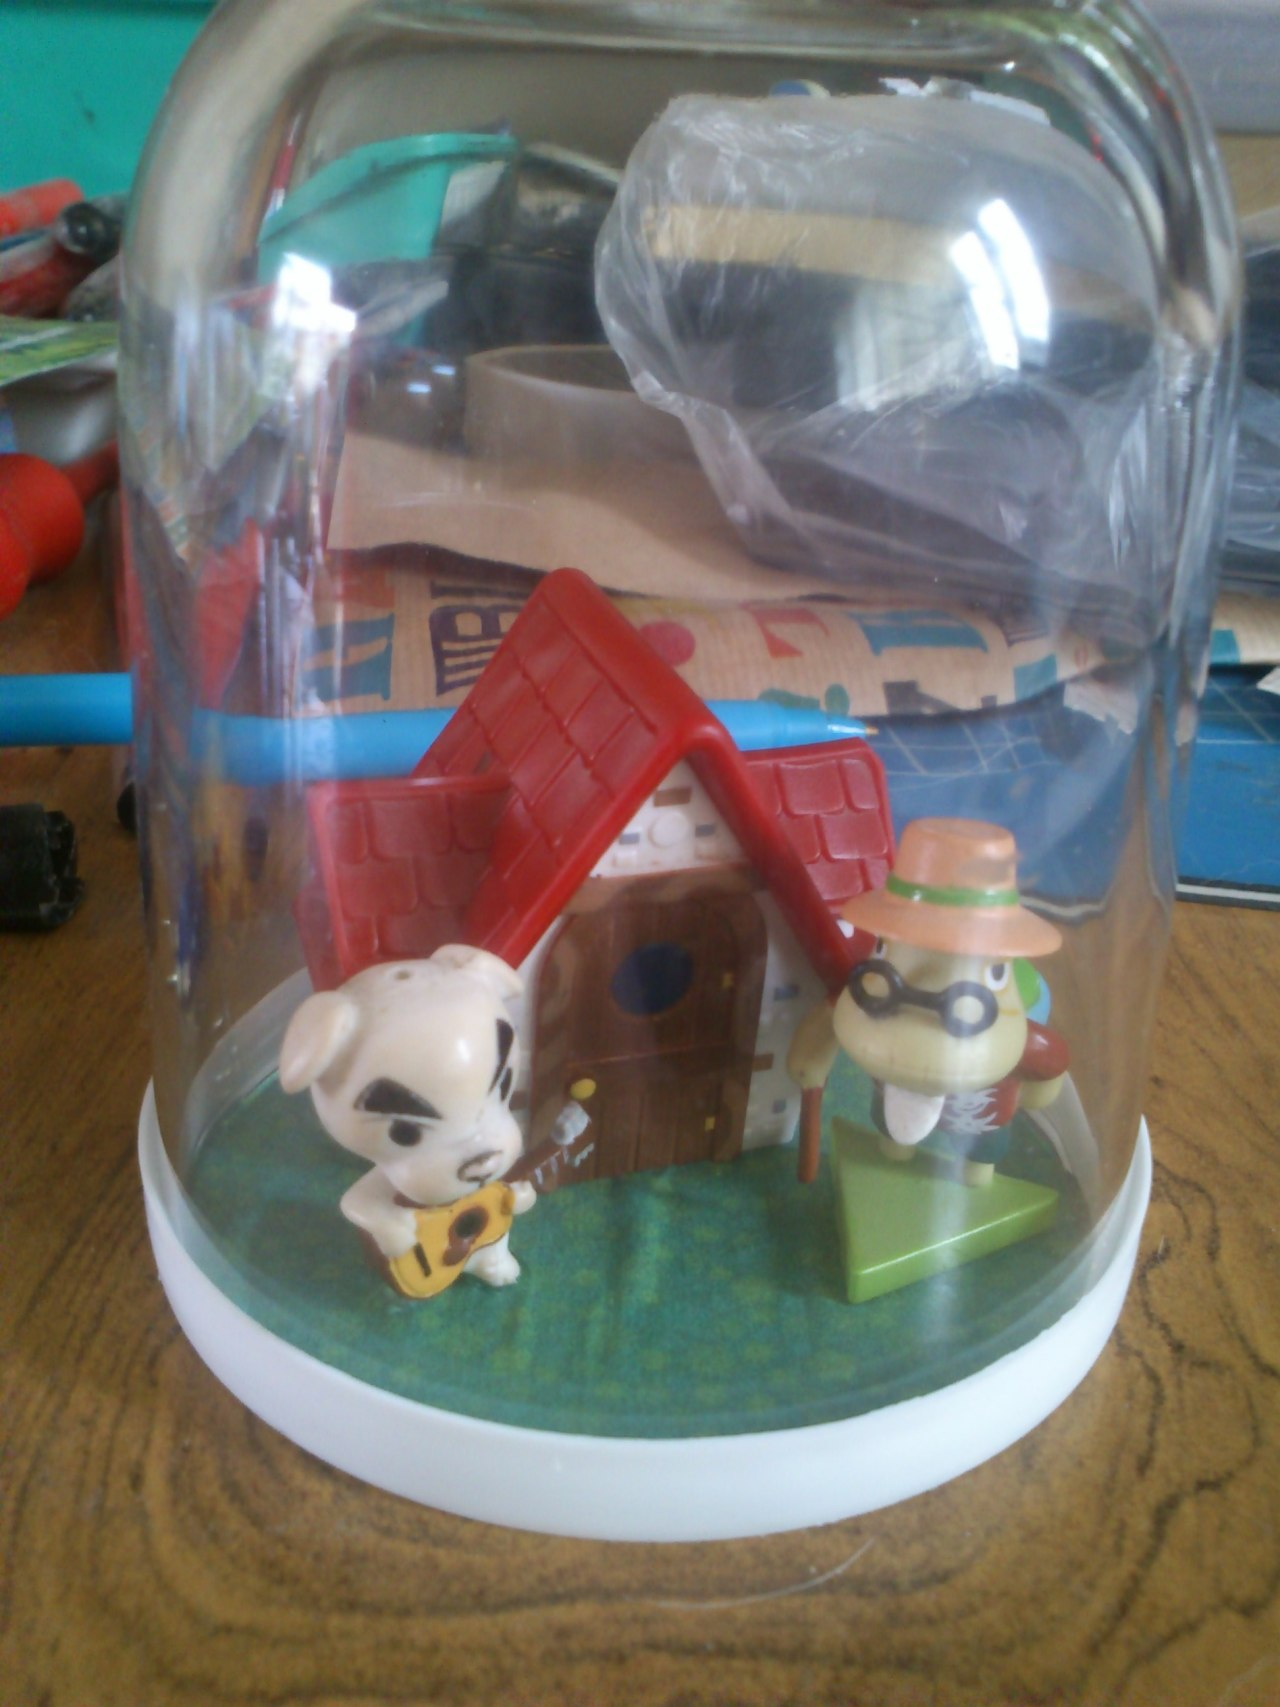 So I made this in like 5 mins.. Its a small Nutella glass, upside down. Printed out some AC grass and glued it to the bottom Glued in the House and Tortimer I got free with ONM Took KK off a keyring thing and glued him in too Tadaaah! AC Diorama!